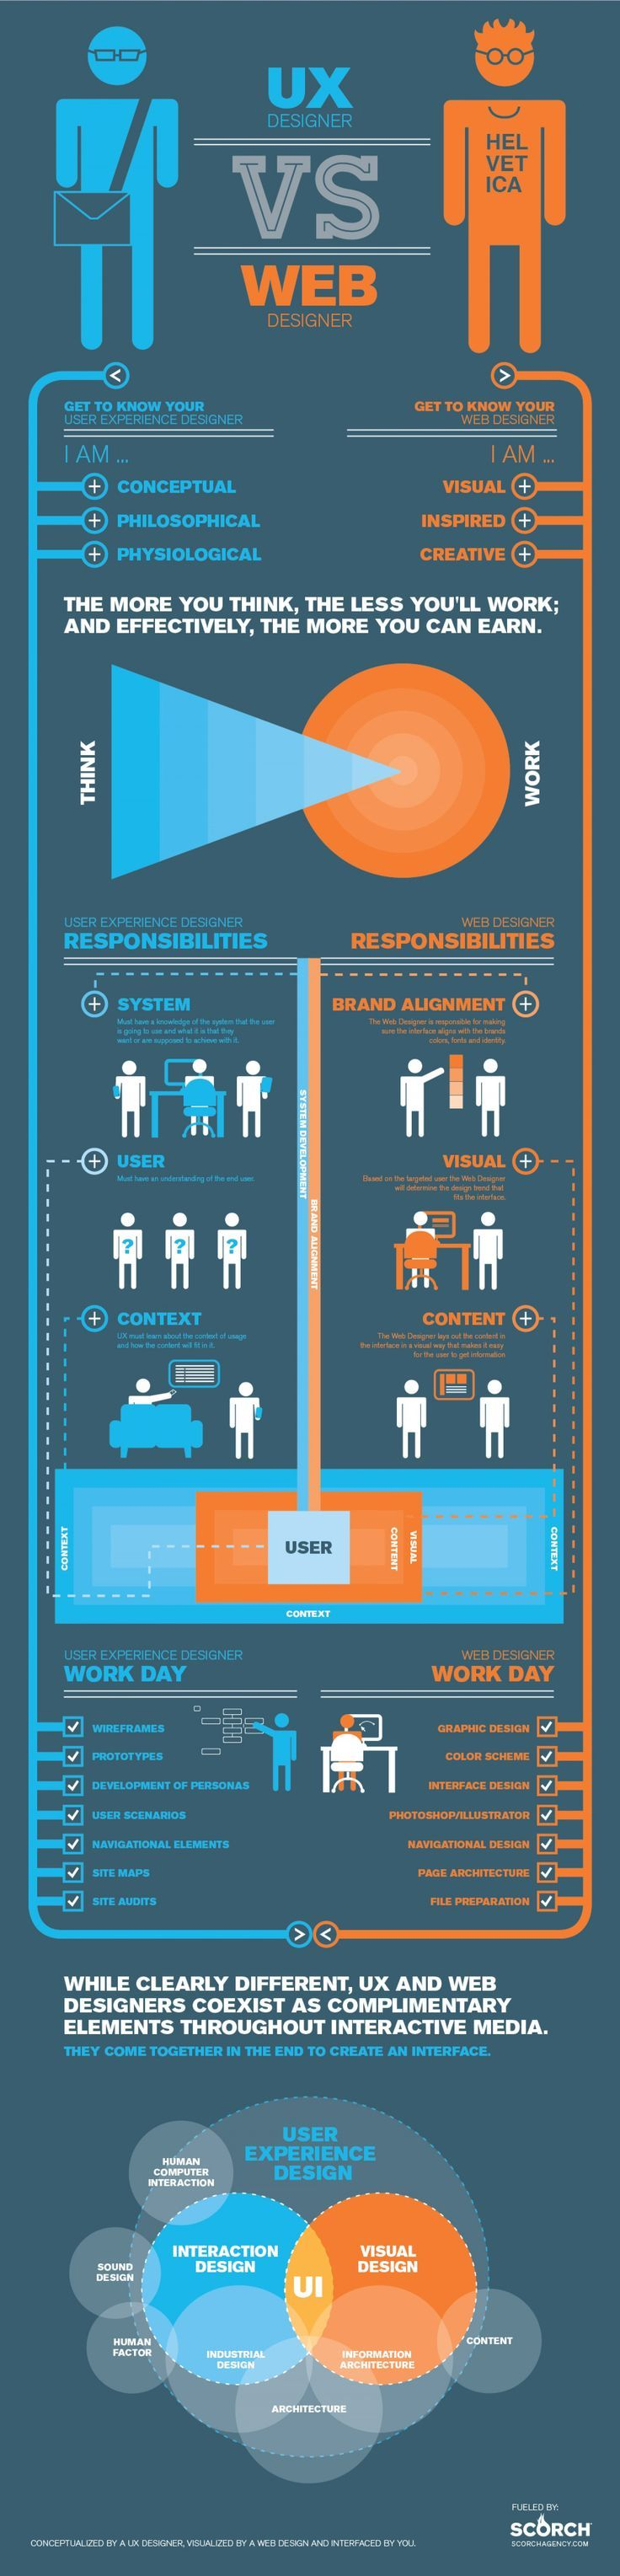 UX Designers vs Web Designers - What are some of the basic differences between a UX Designer and a Web Designer.: